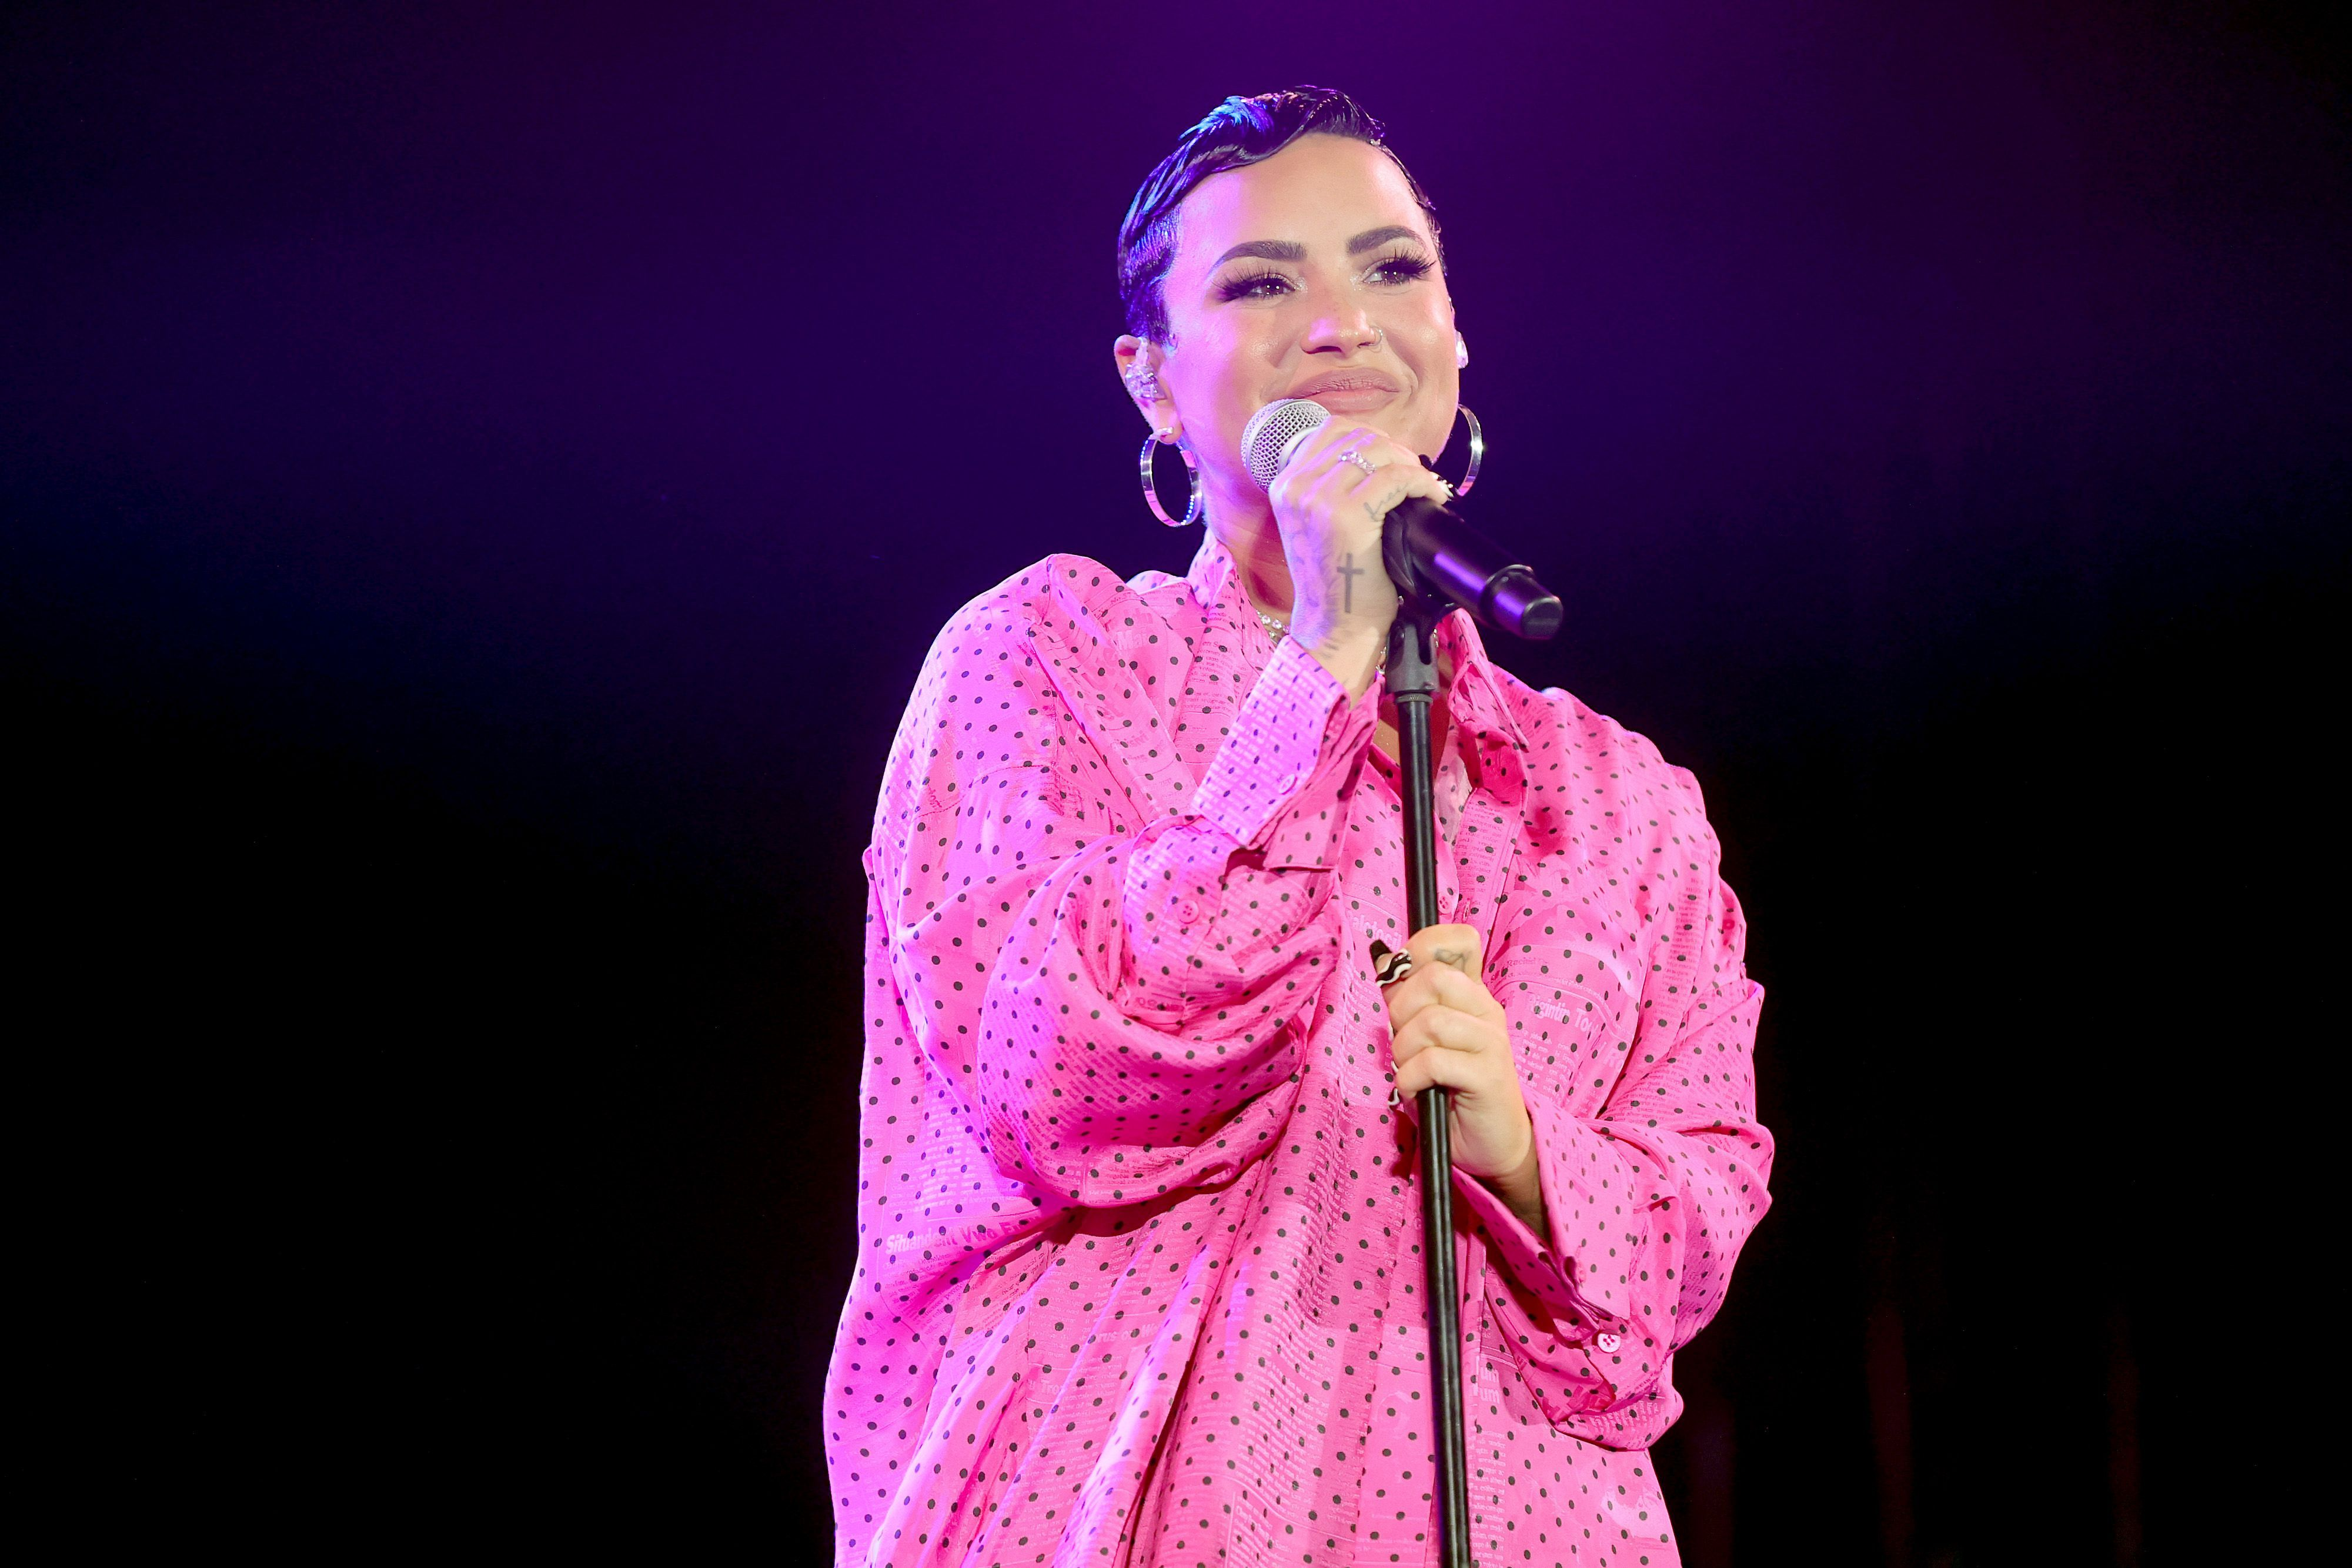 Demi Lovato performs during the premiere of  Demi Lovato: Dancing With The Devil  in Beverly Hills, Calif., on March 22, 2021.